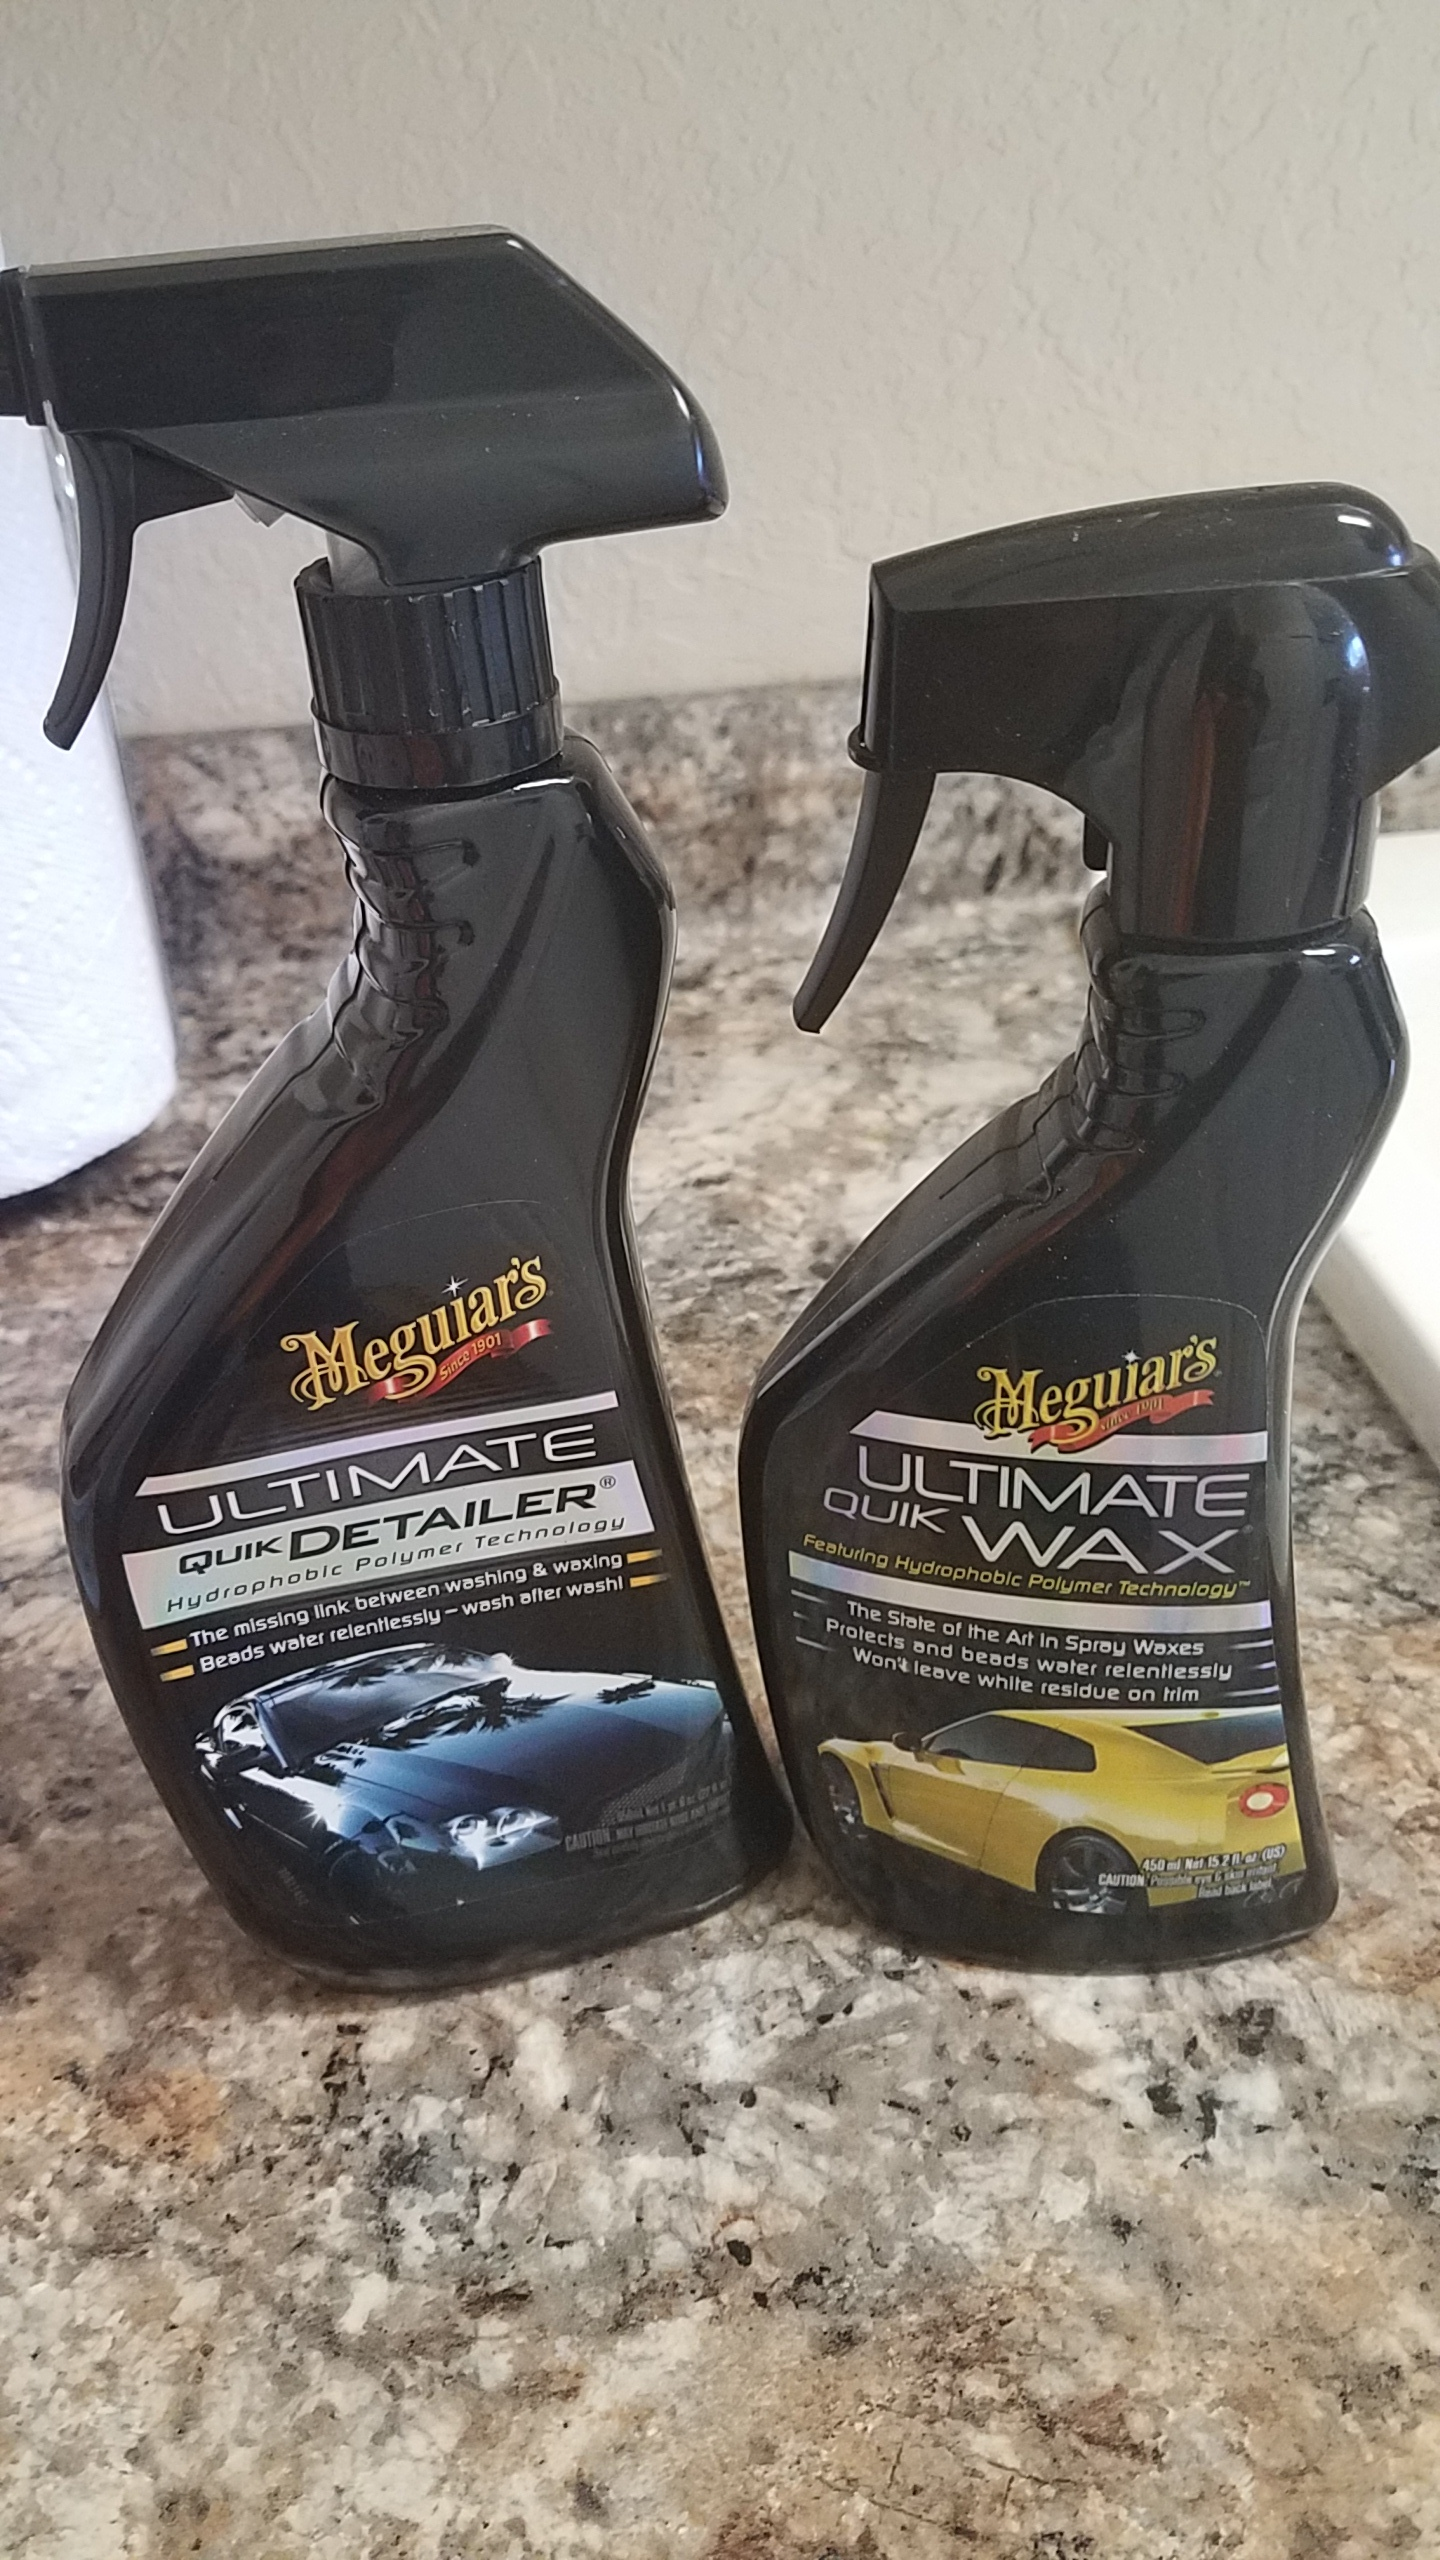 Meguiars Spray Wax (Right)